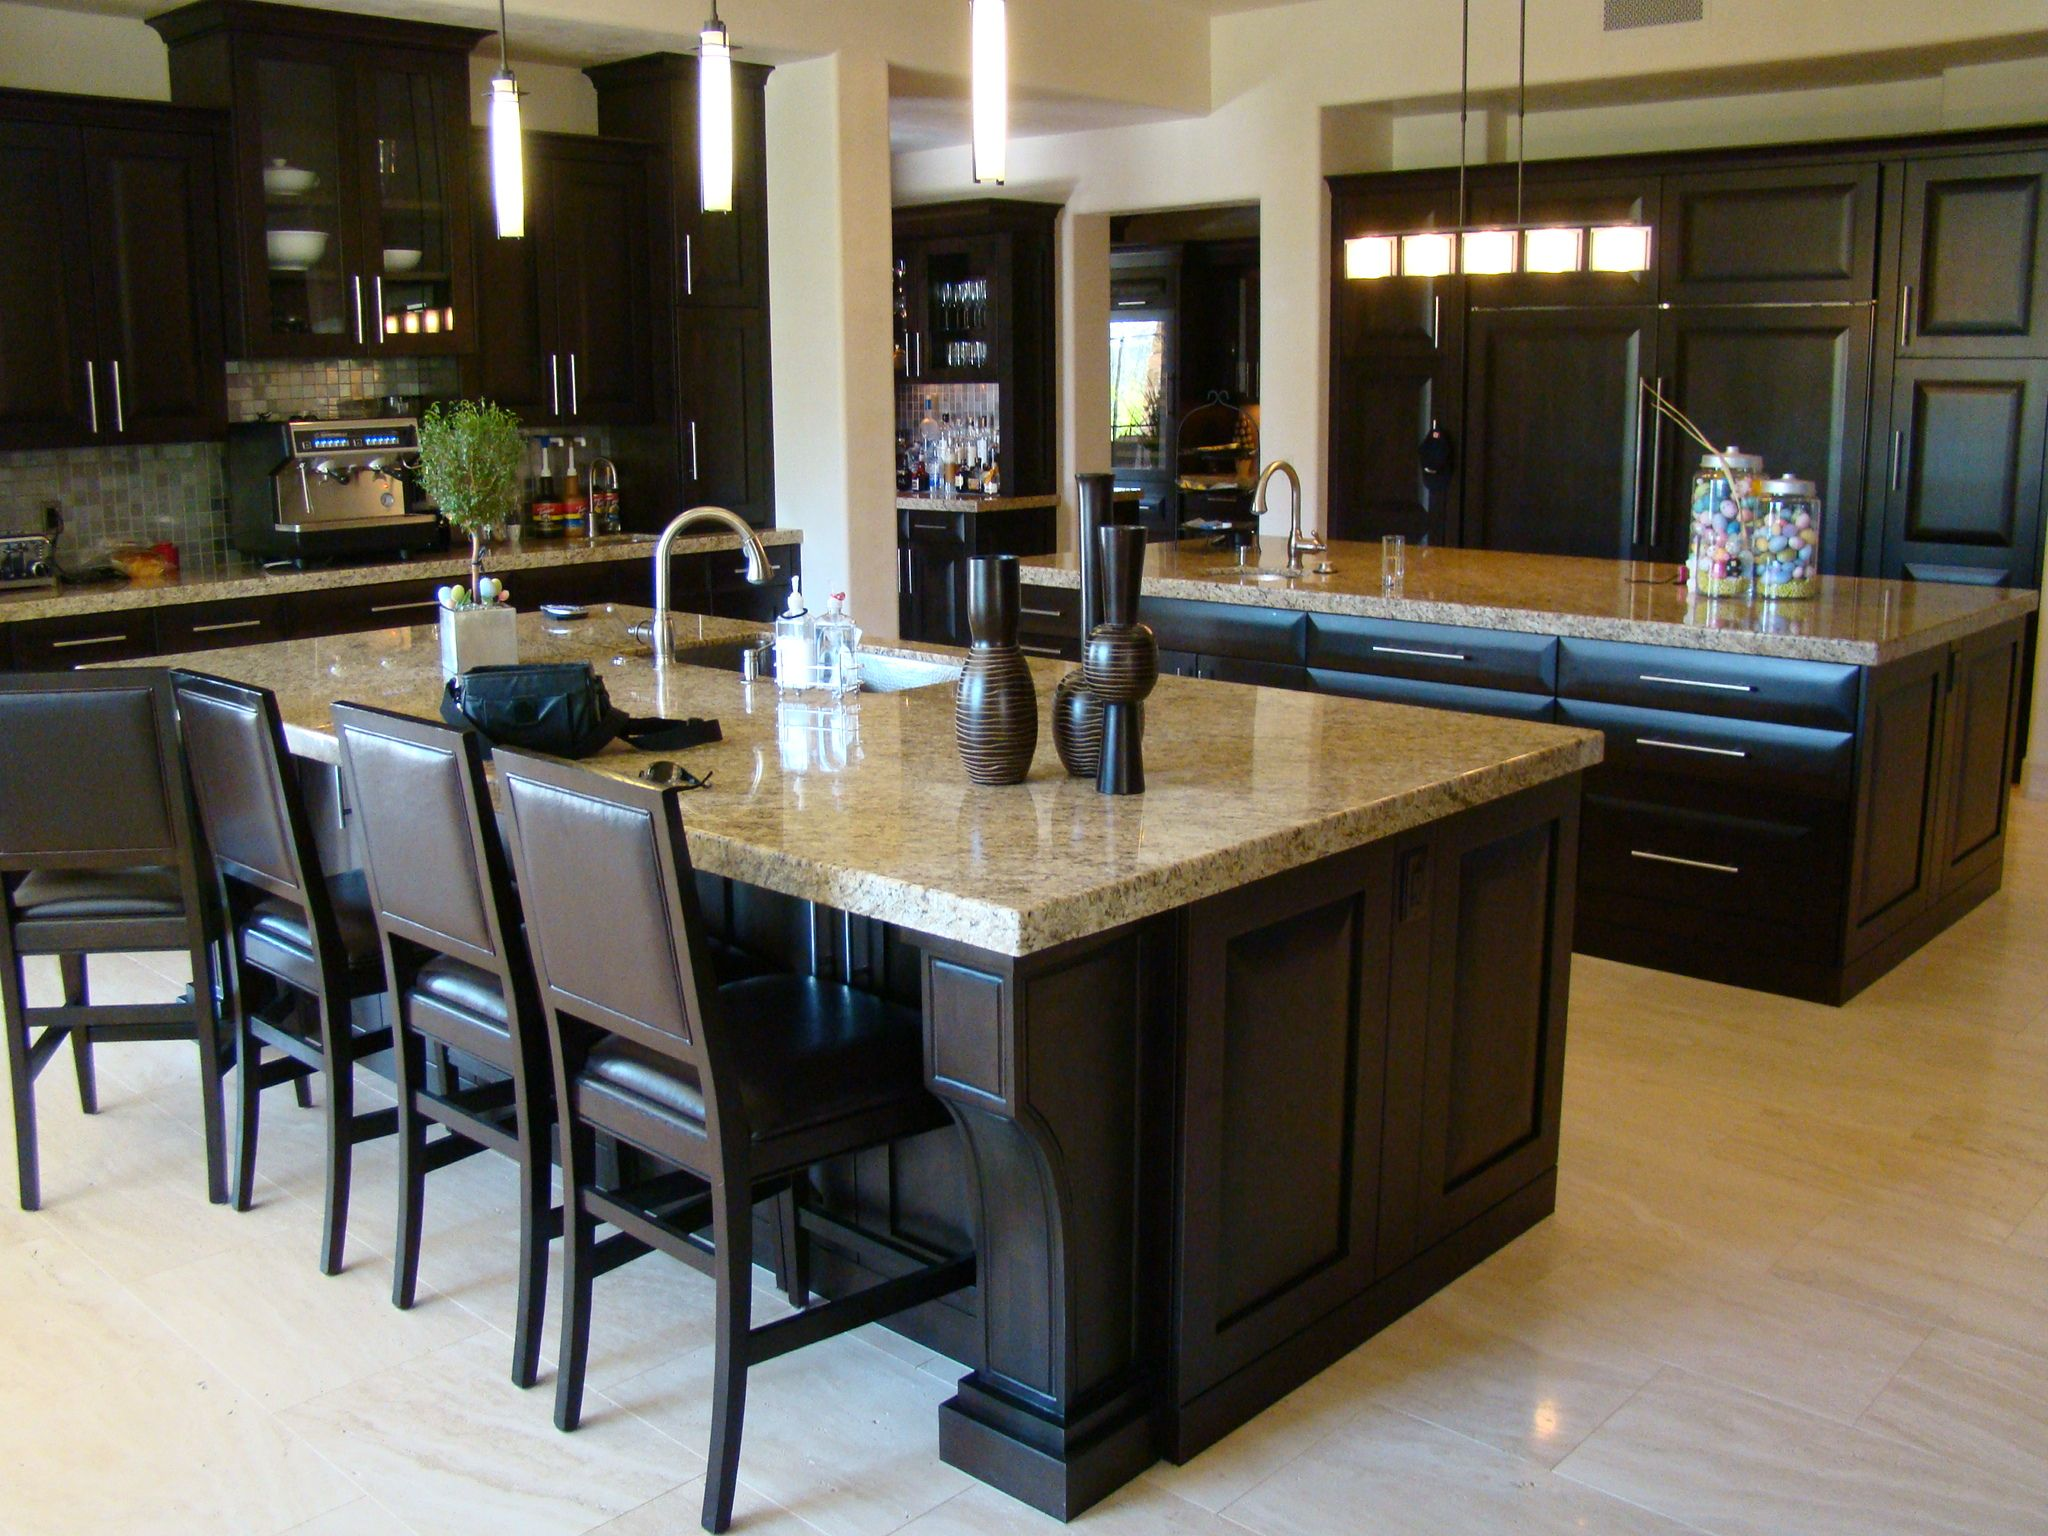 Travertine Floors In Kitchen 86 Best Images About Kitchen Design Ideas On Pinterest